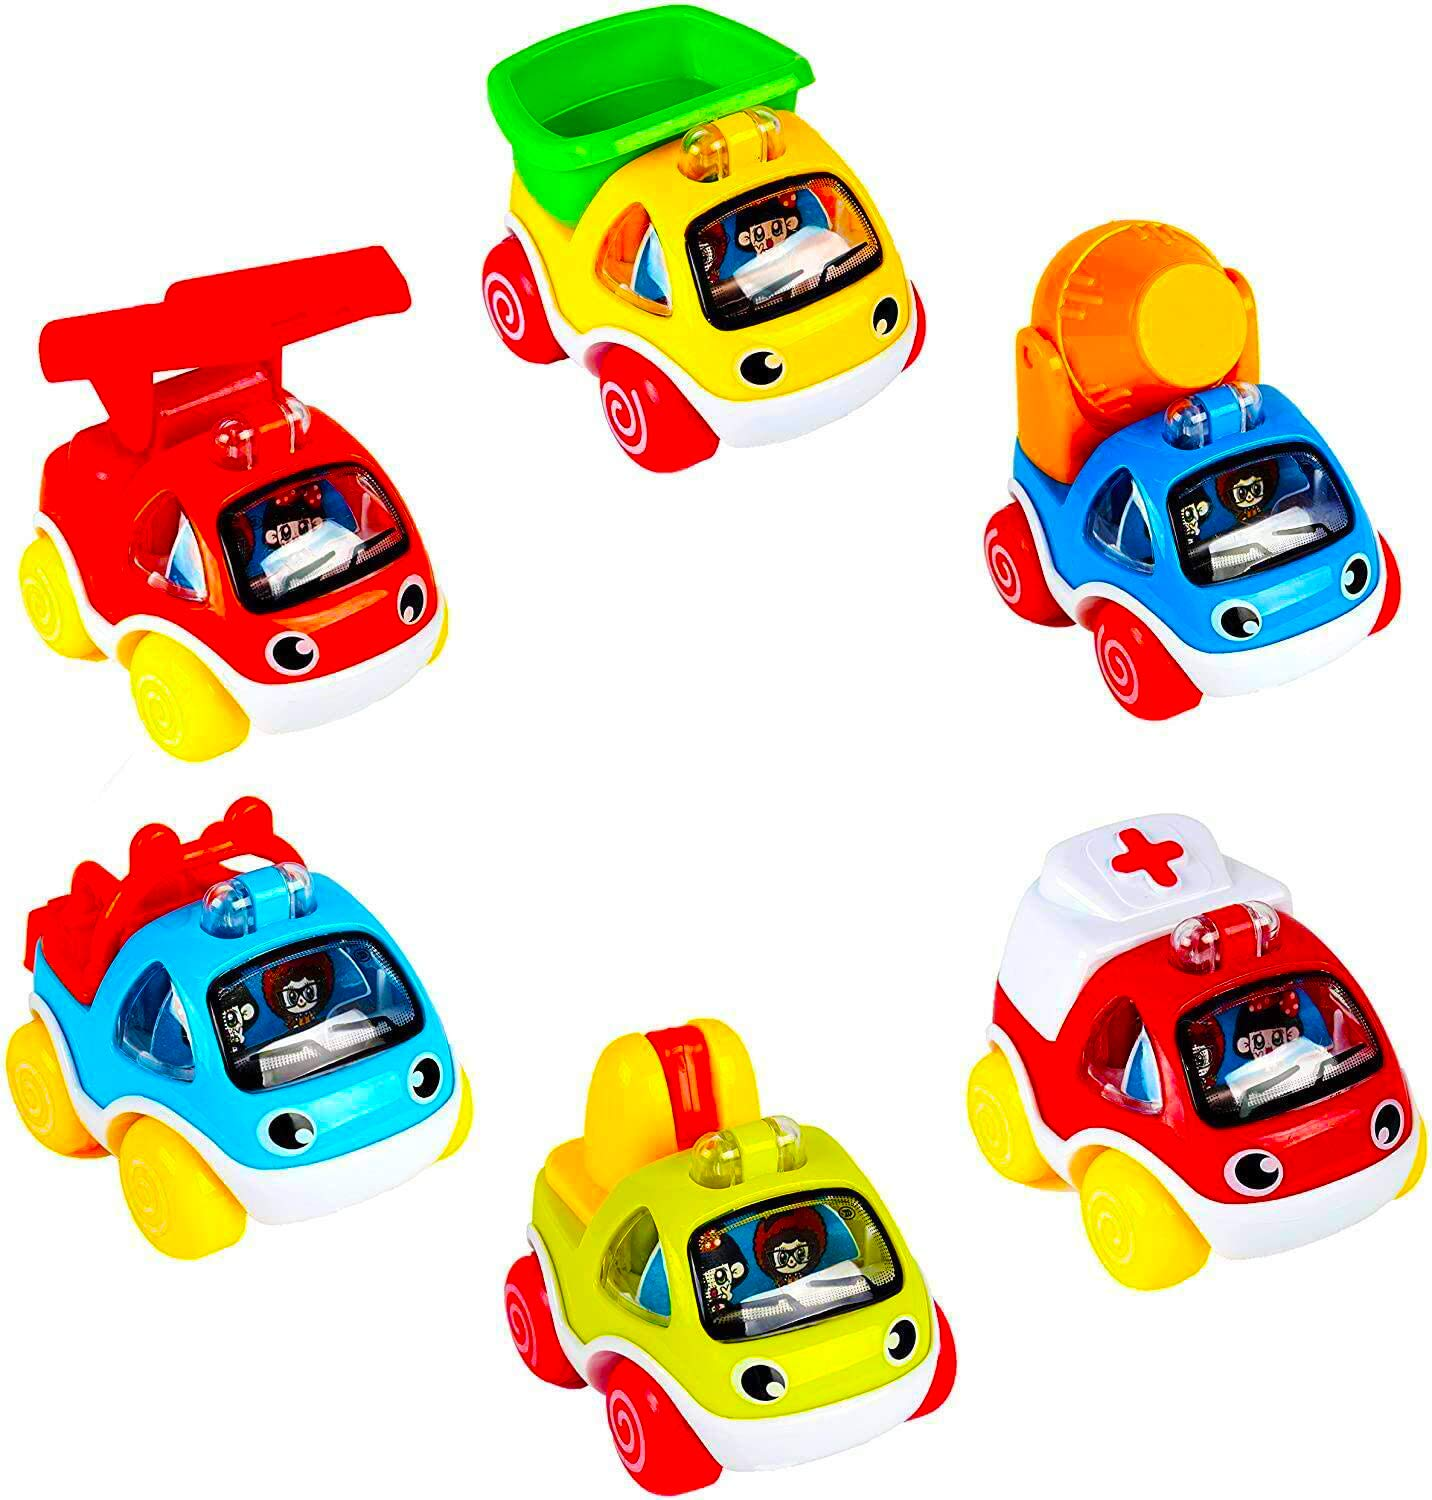 LUKAT 6 Piece Toys Cars Set, Pull Back Cars for 1 2 3 Years Old Baby Kids, Toddlers Early Education Go Car Toy for Boys Girls